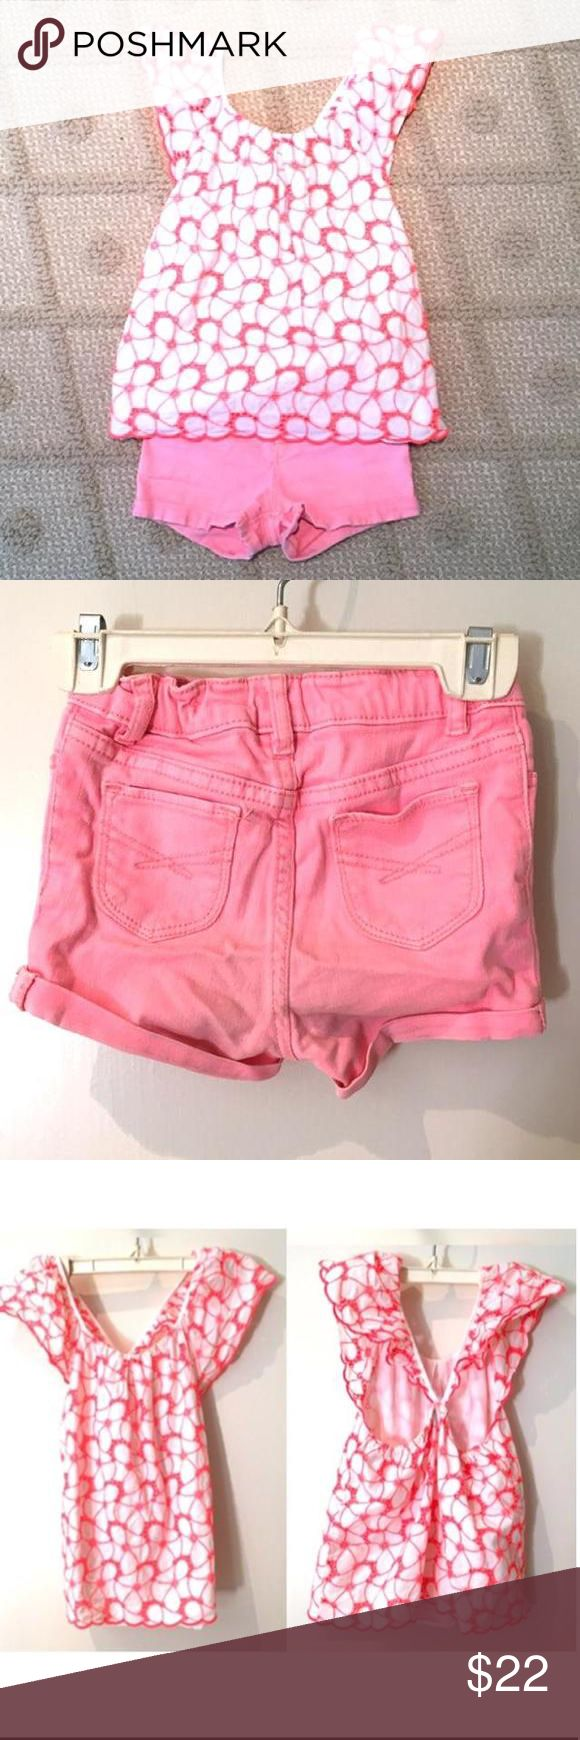 BABYGAP Adorable Summer 2pc Adorable summer 2pc outfit. Coral color. Denim shorts and matching too with beautiful back detail. Super cute and in great condition. $58 retail. Baby Gap Dresses